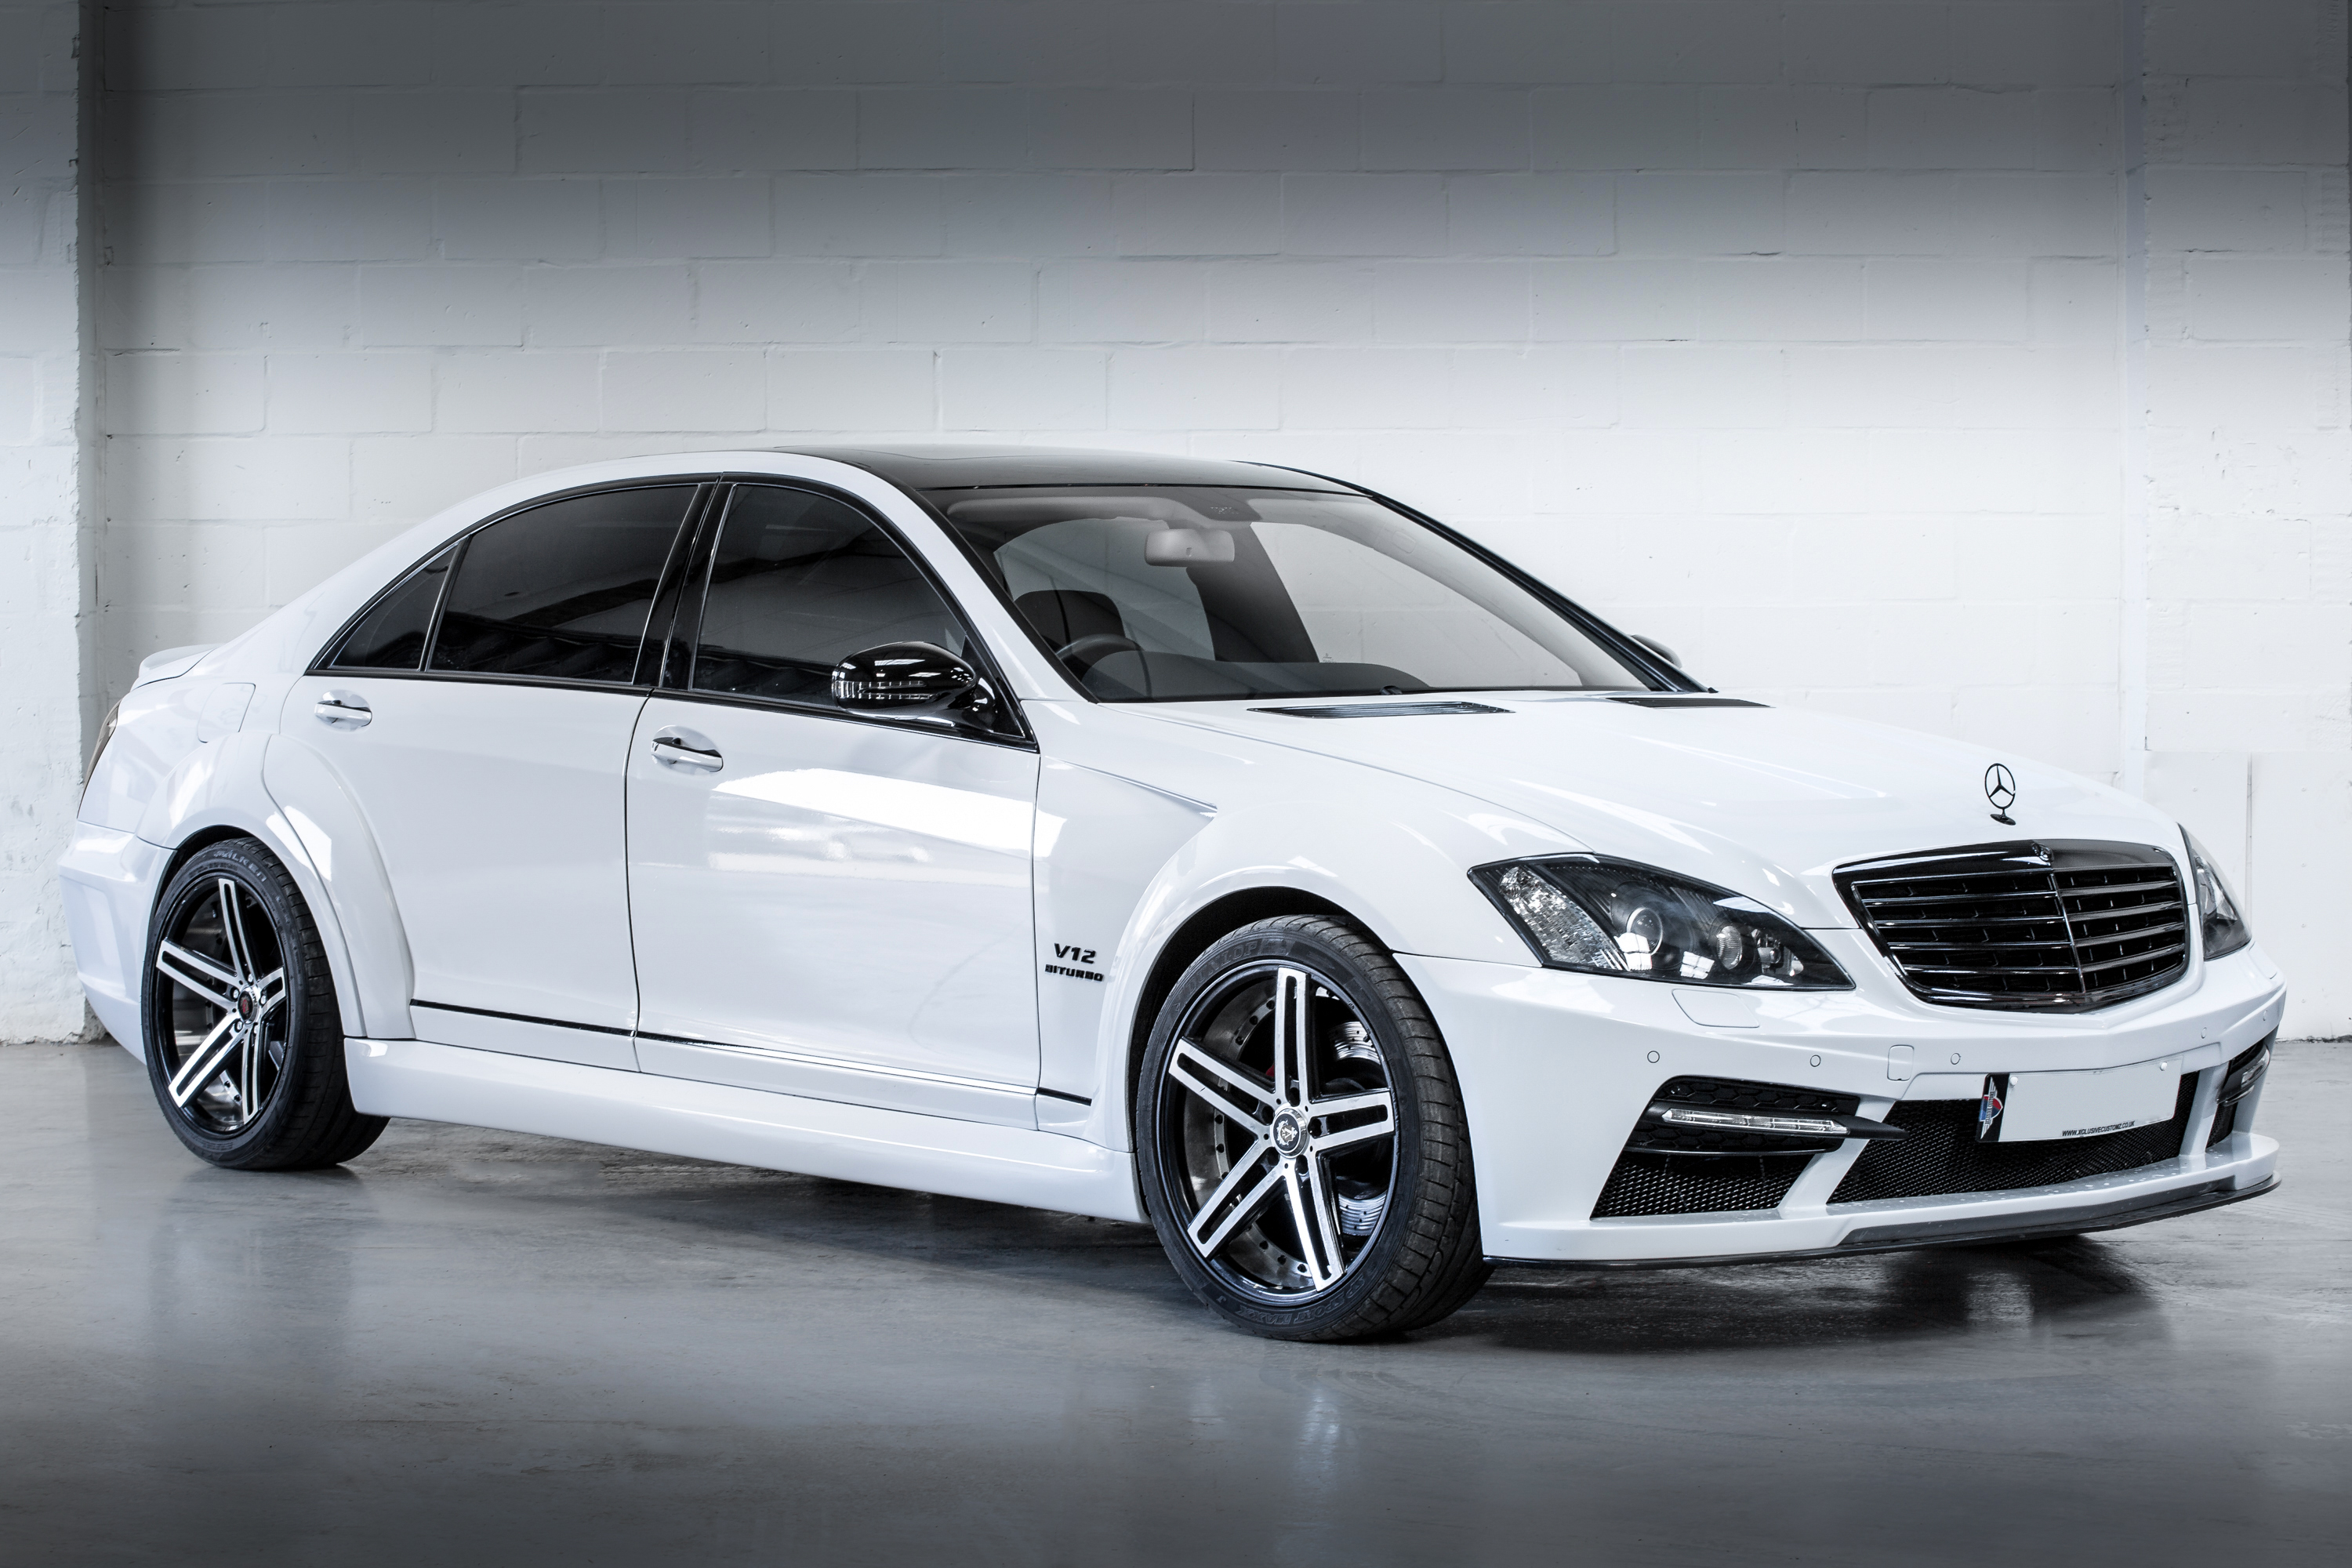 V17A1497 Mercedes S-Class to Black Series Wide Kit